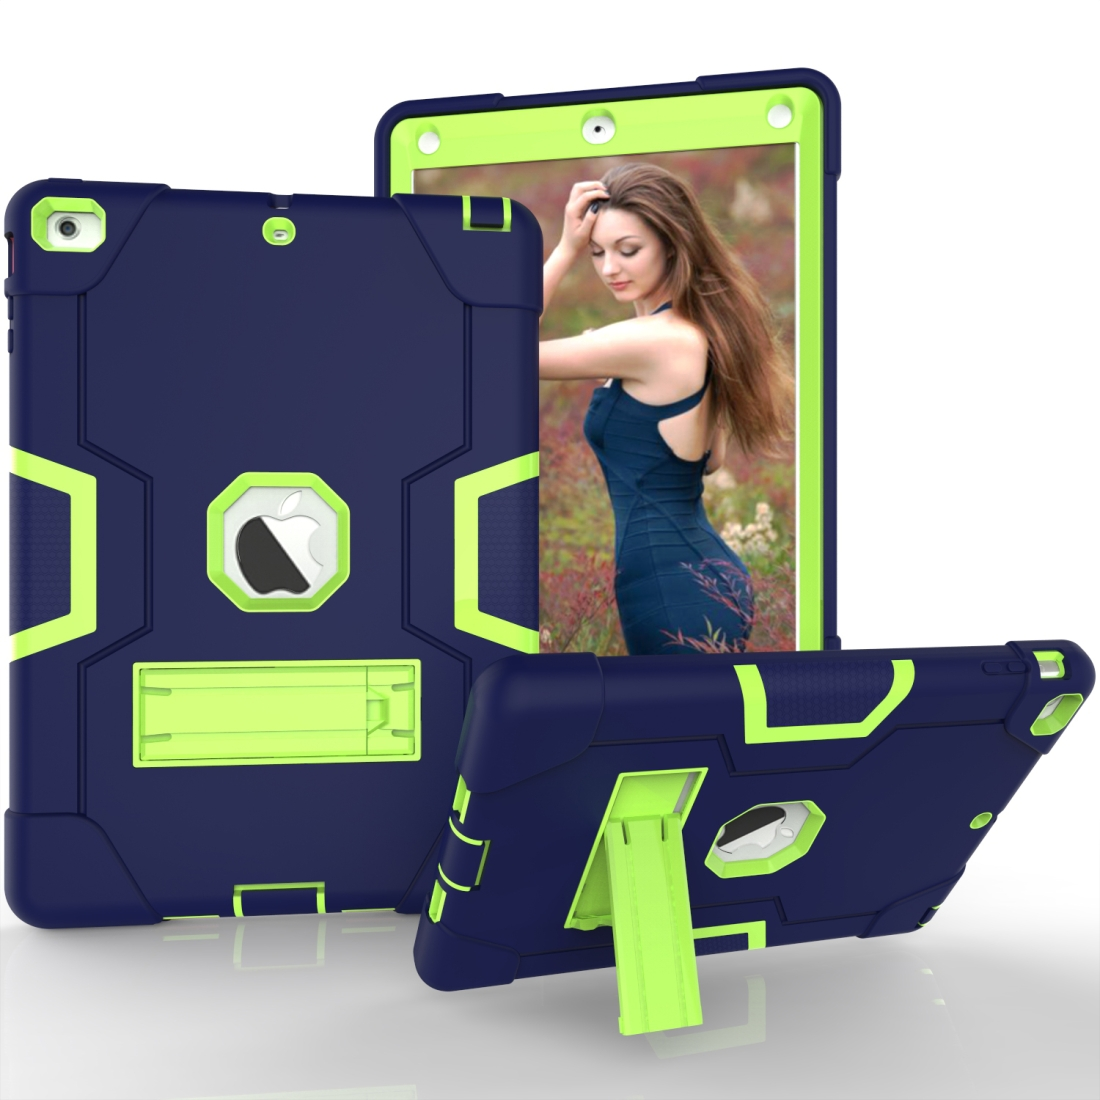 iPad Air Cover Featuring Contrasting Colors In A Tough Durable Protective Armor Case (Navy/Olivine)